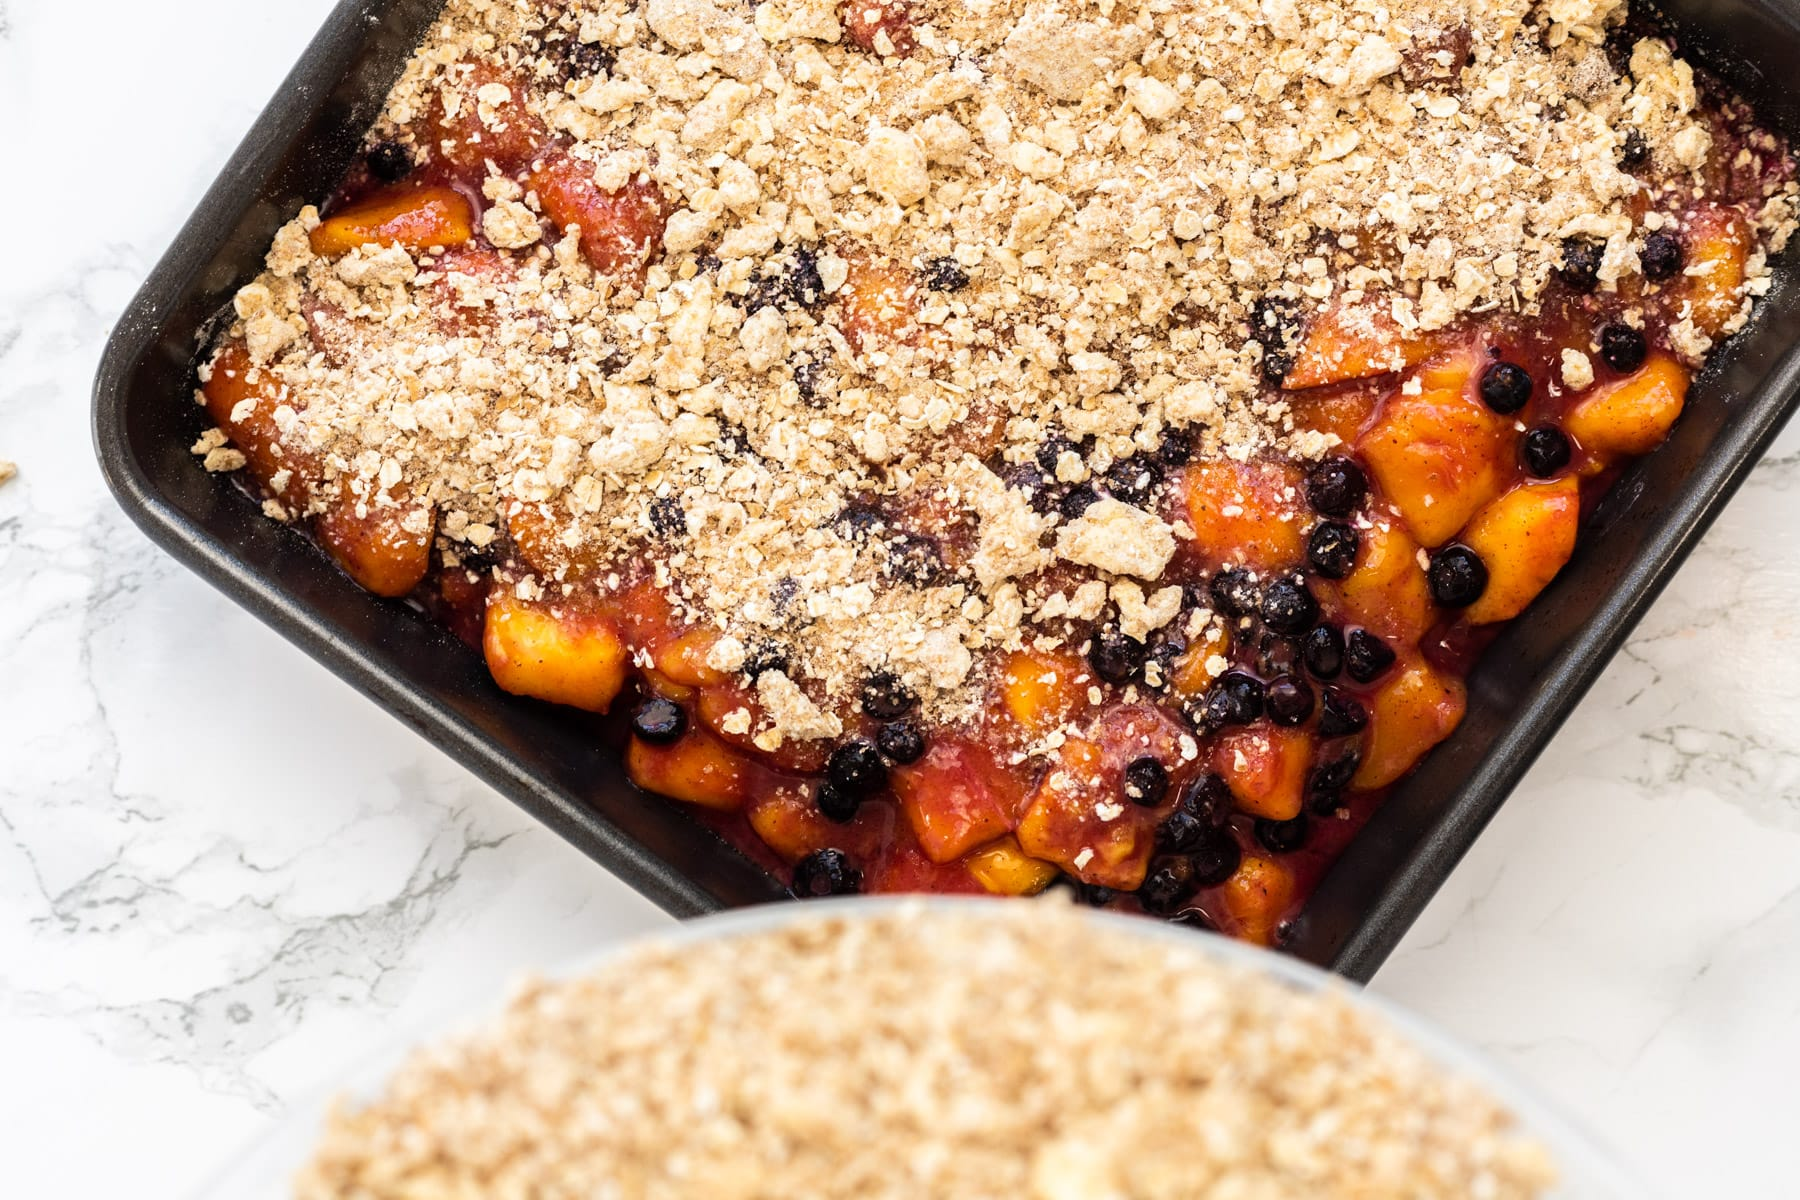 Pouring crumble topping over a baking dish filled with spiced mangoes and blueberries.